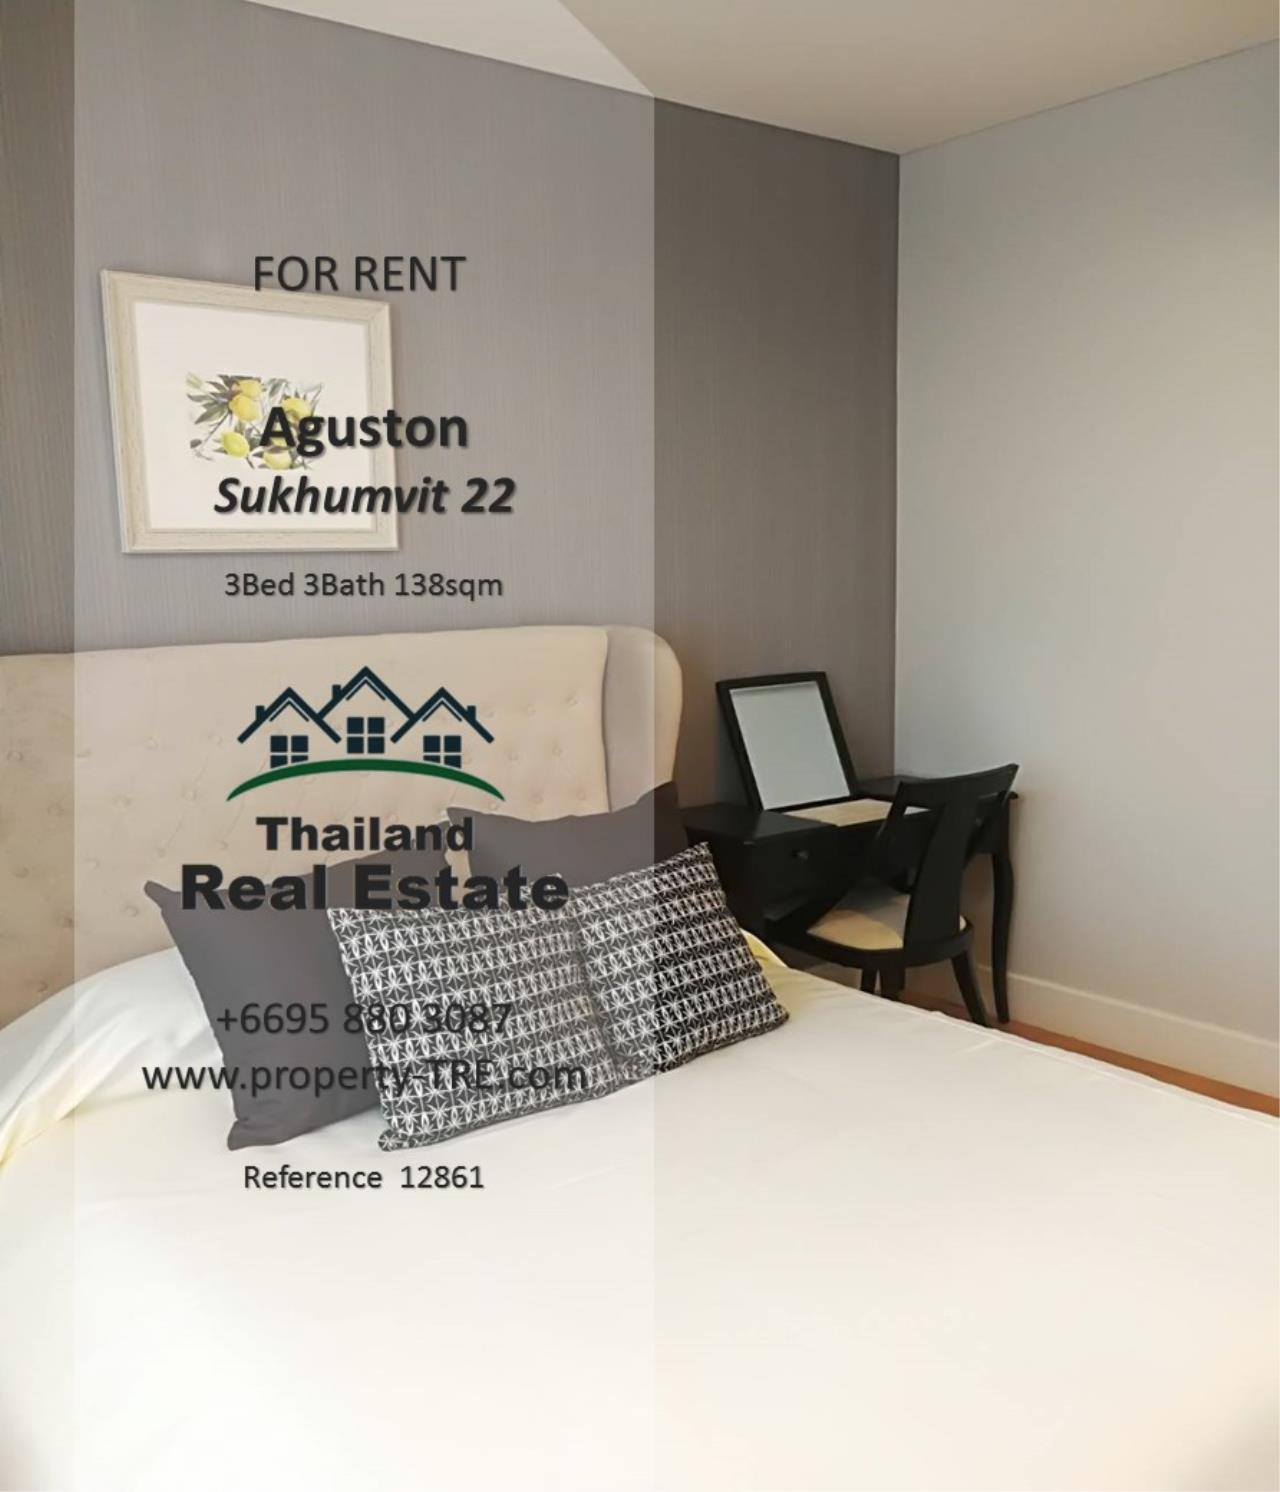 Thailand Real Estate Agency's 3 Bedroom Condo at Aguston Sukhumvit 22 near BTS Phrom Phong(12681) 14